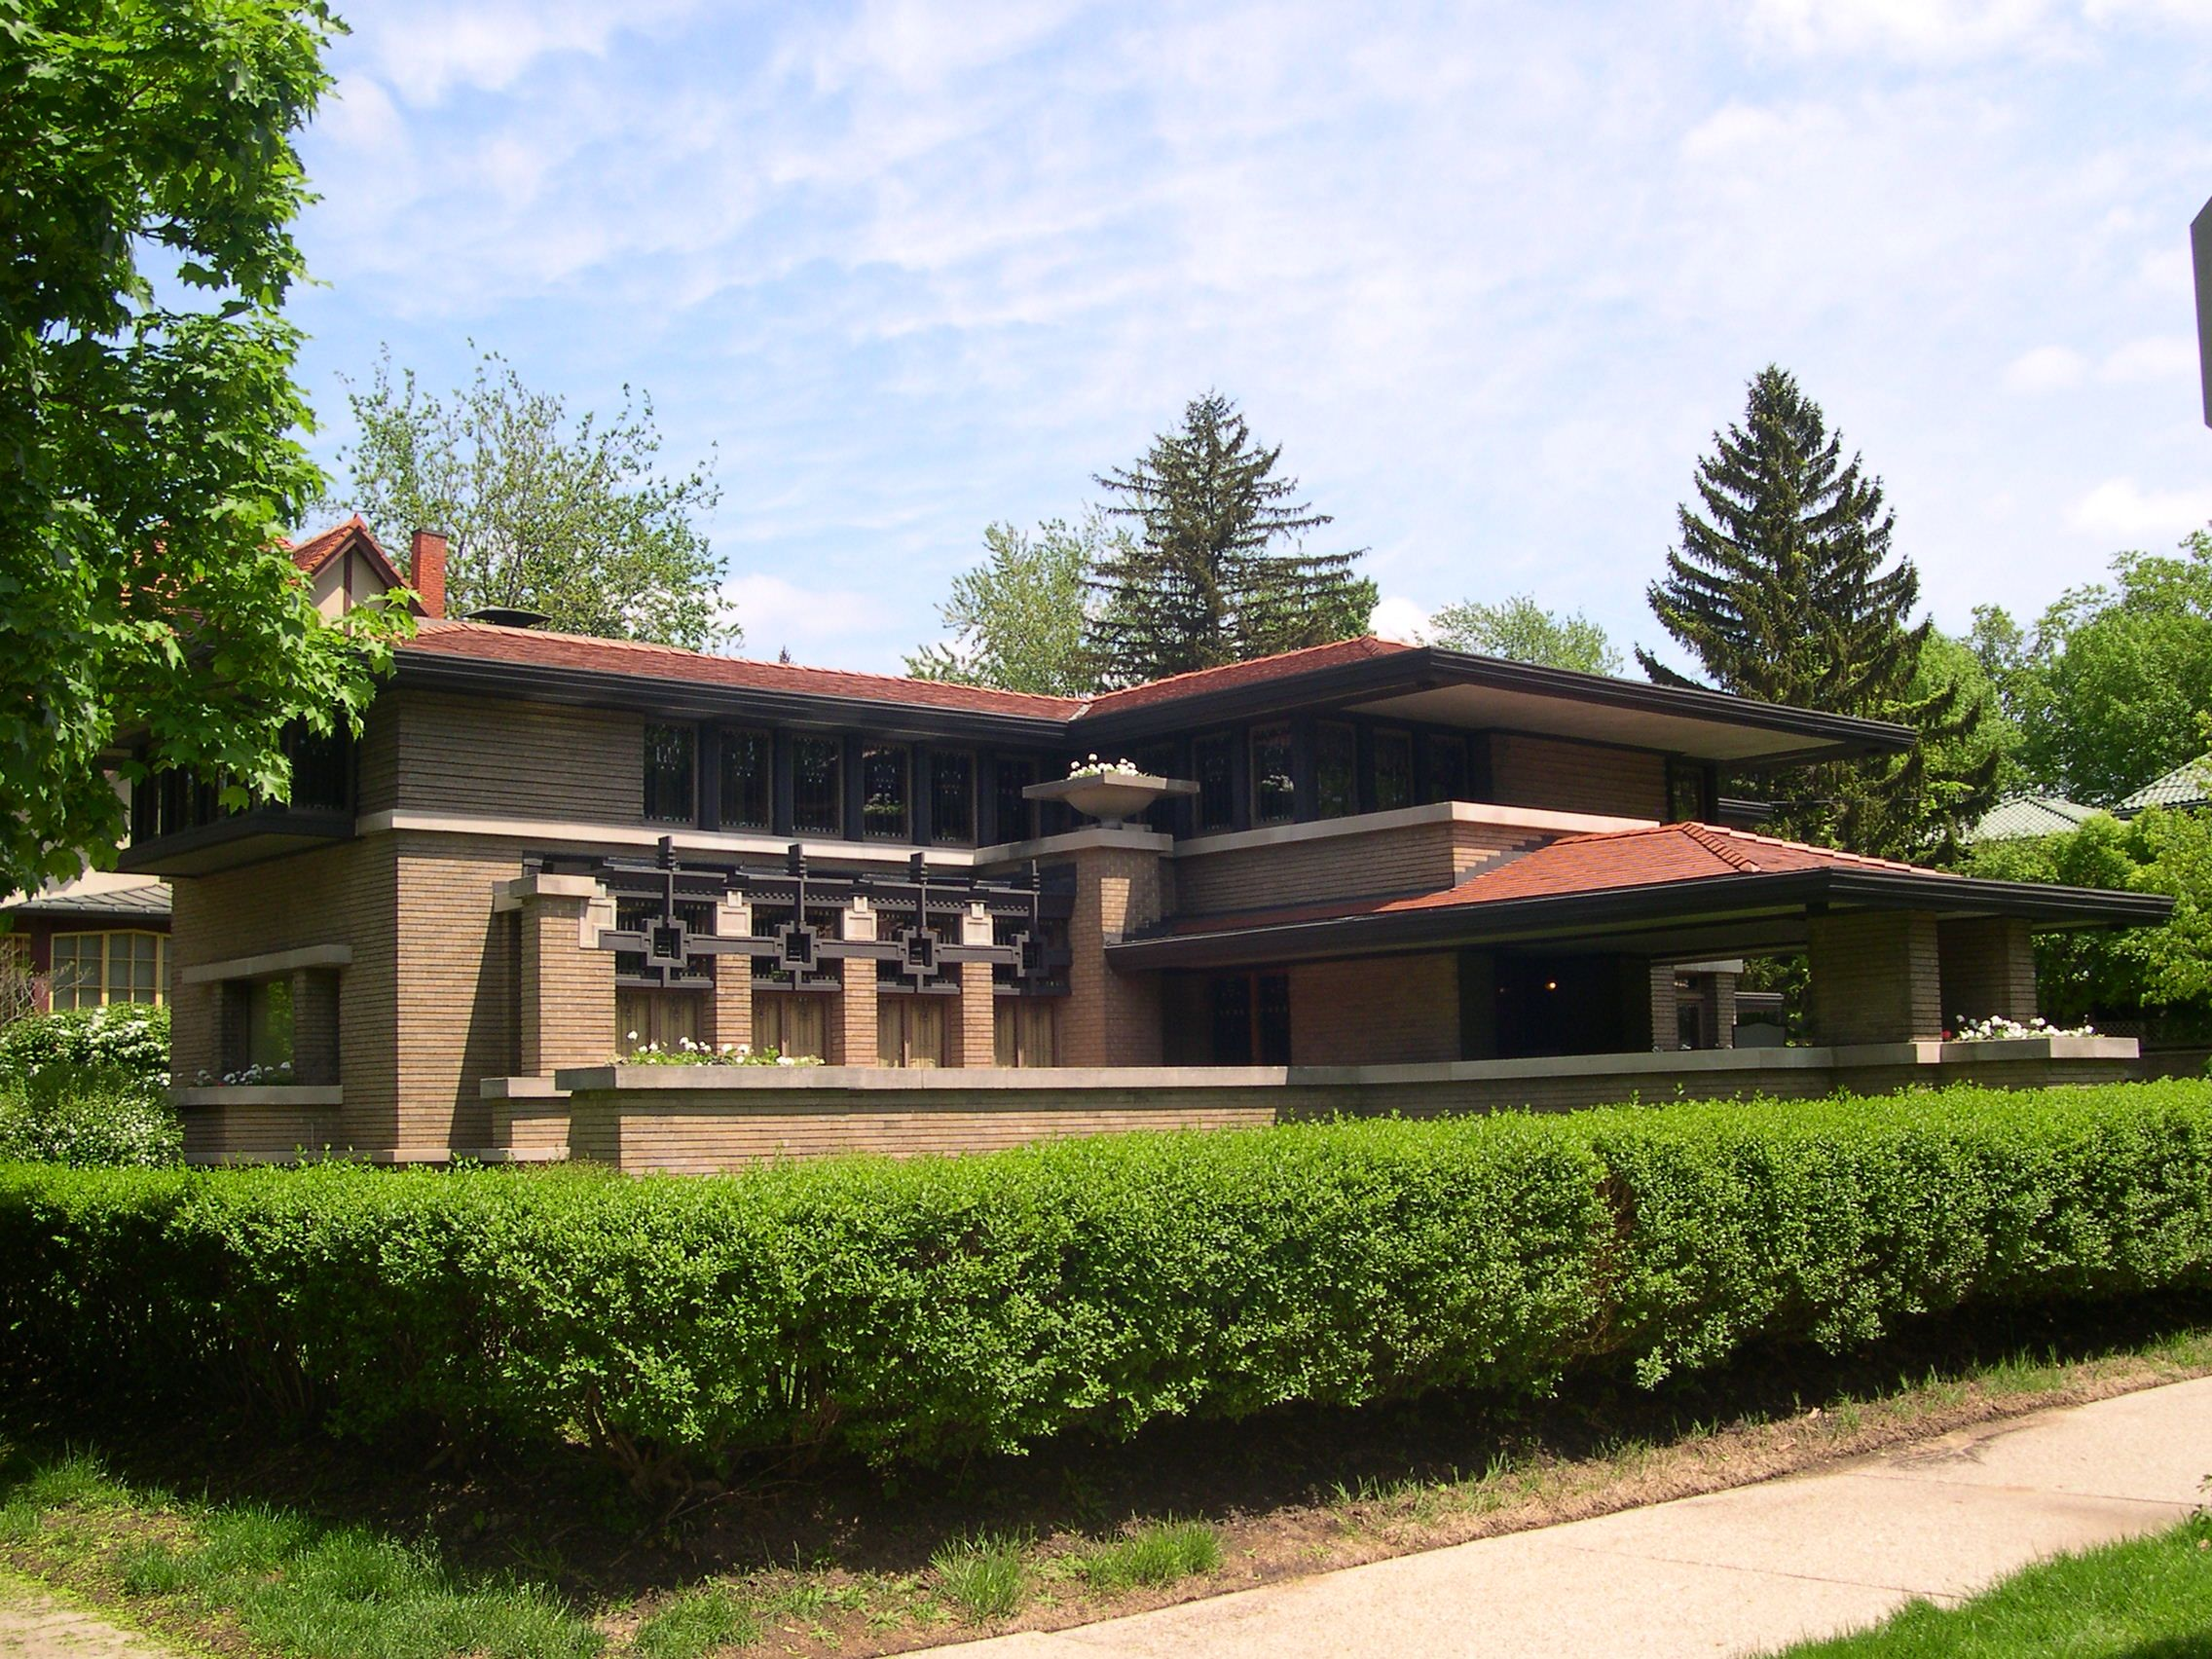 Frank Lloyd Wright Prairie Houses frank lloyd wright's effort to transform the spatial organization